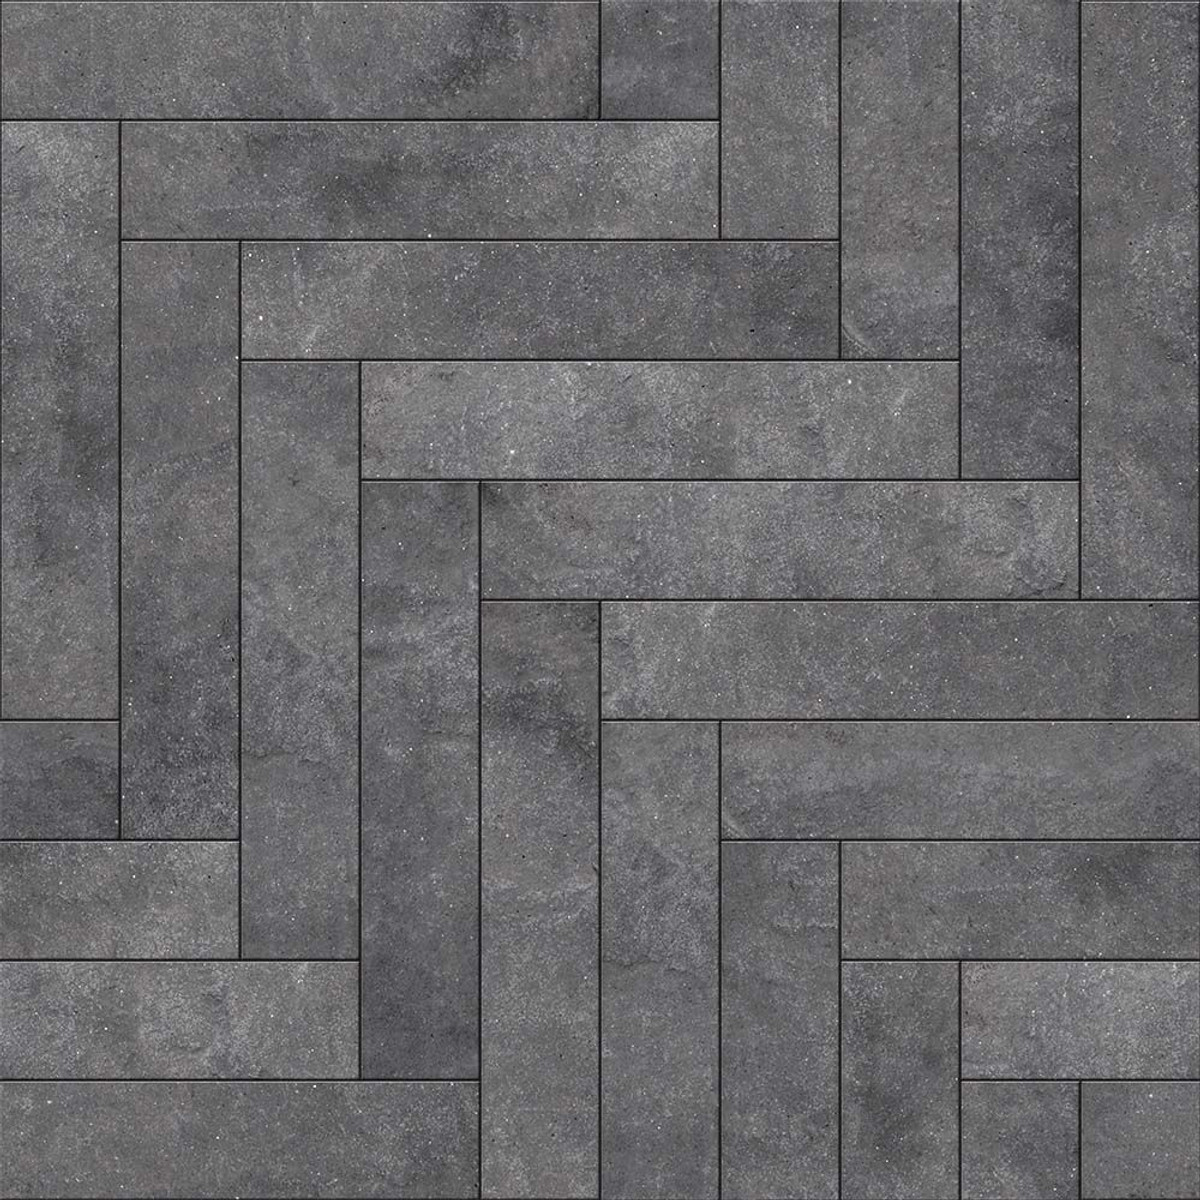 Perfection Floor Tile Natural Stone Chevron Blackstone